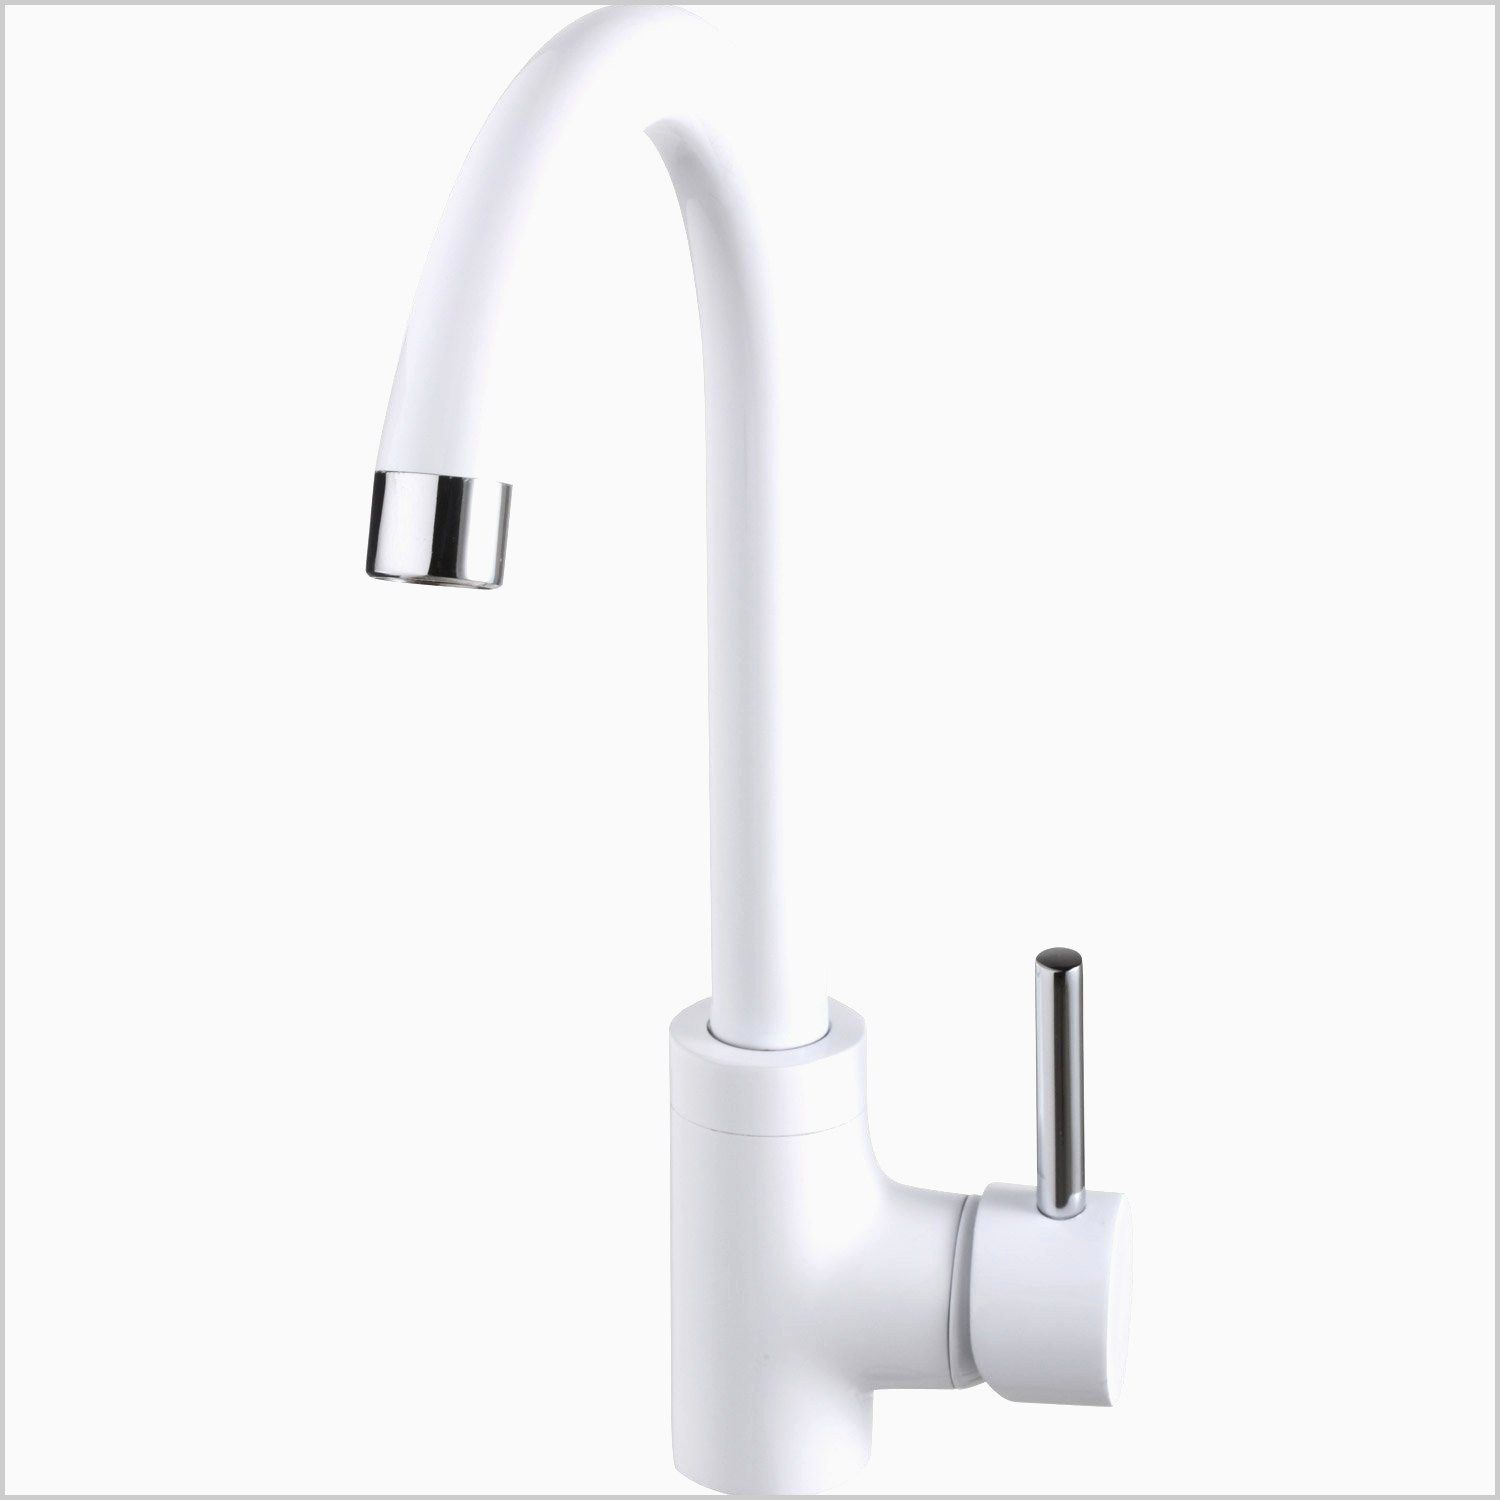 Changer Joint Robinet Grohe Changer Joint Robinet Grohe concernant Robinet Salle De Bain Brico Depot